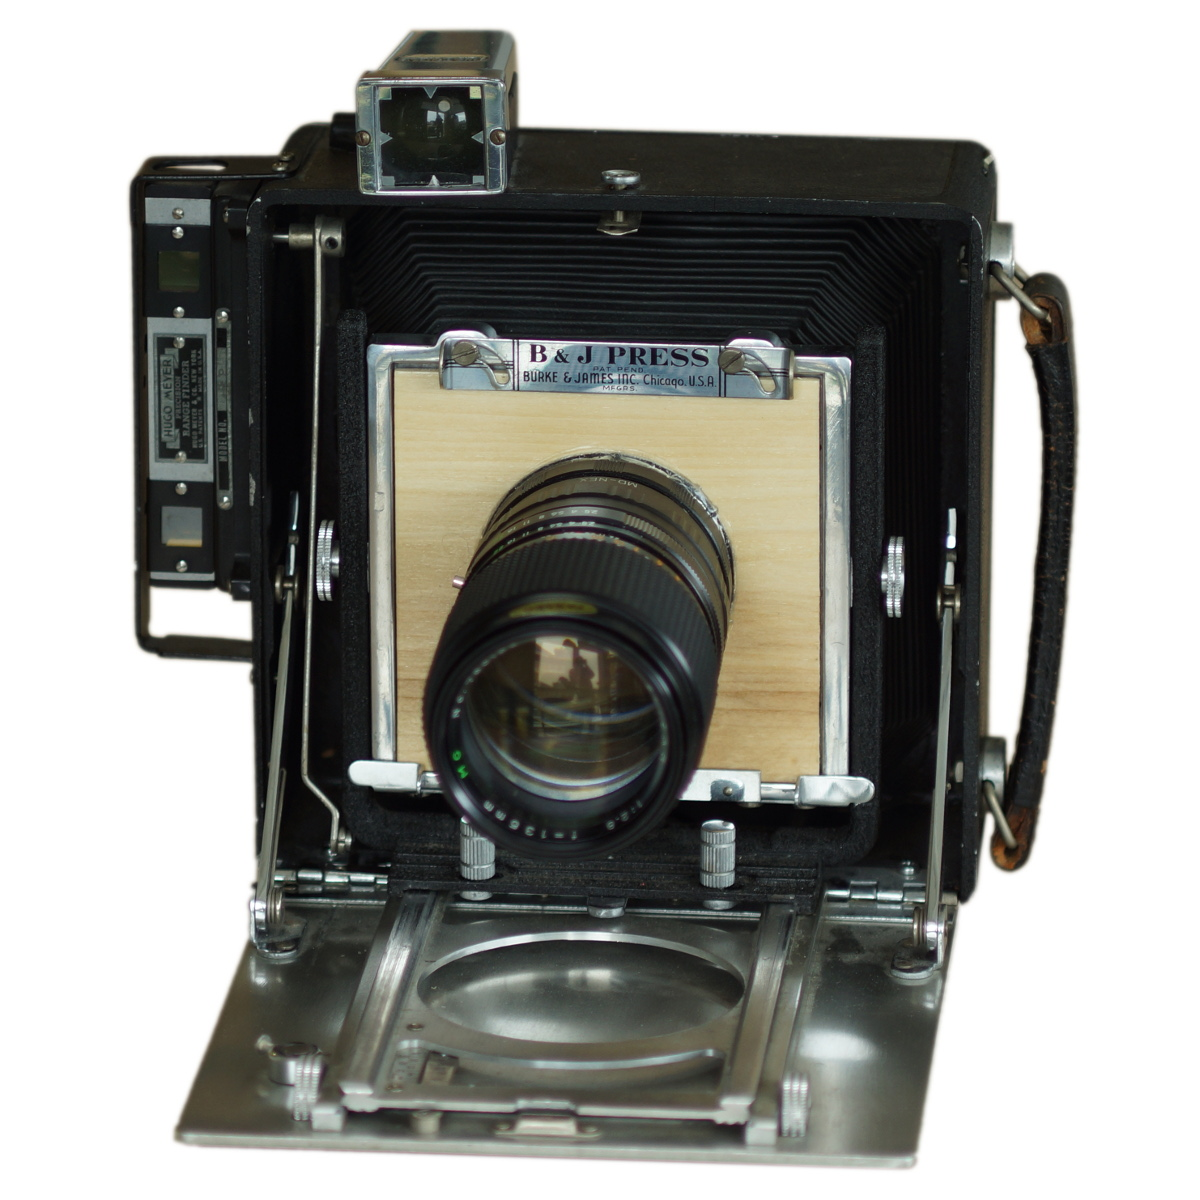 Custom Lensboards For A Large-Format Camera